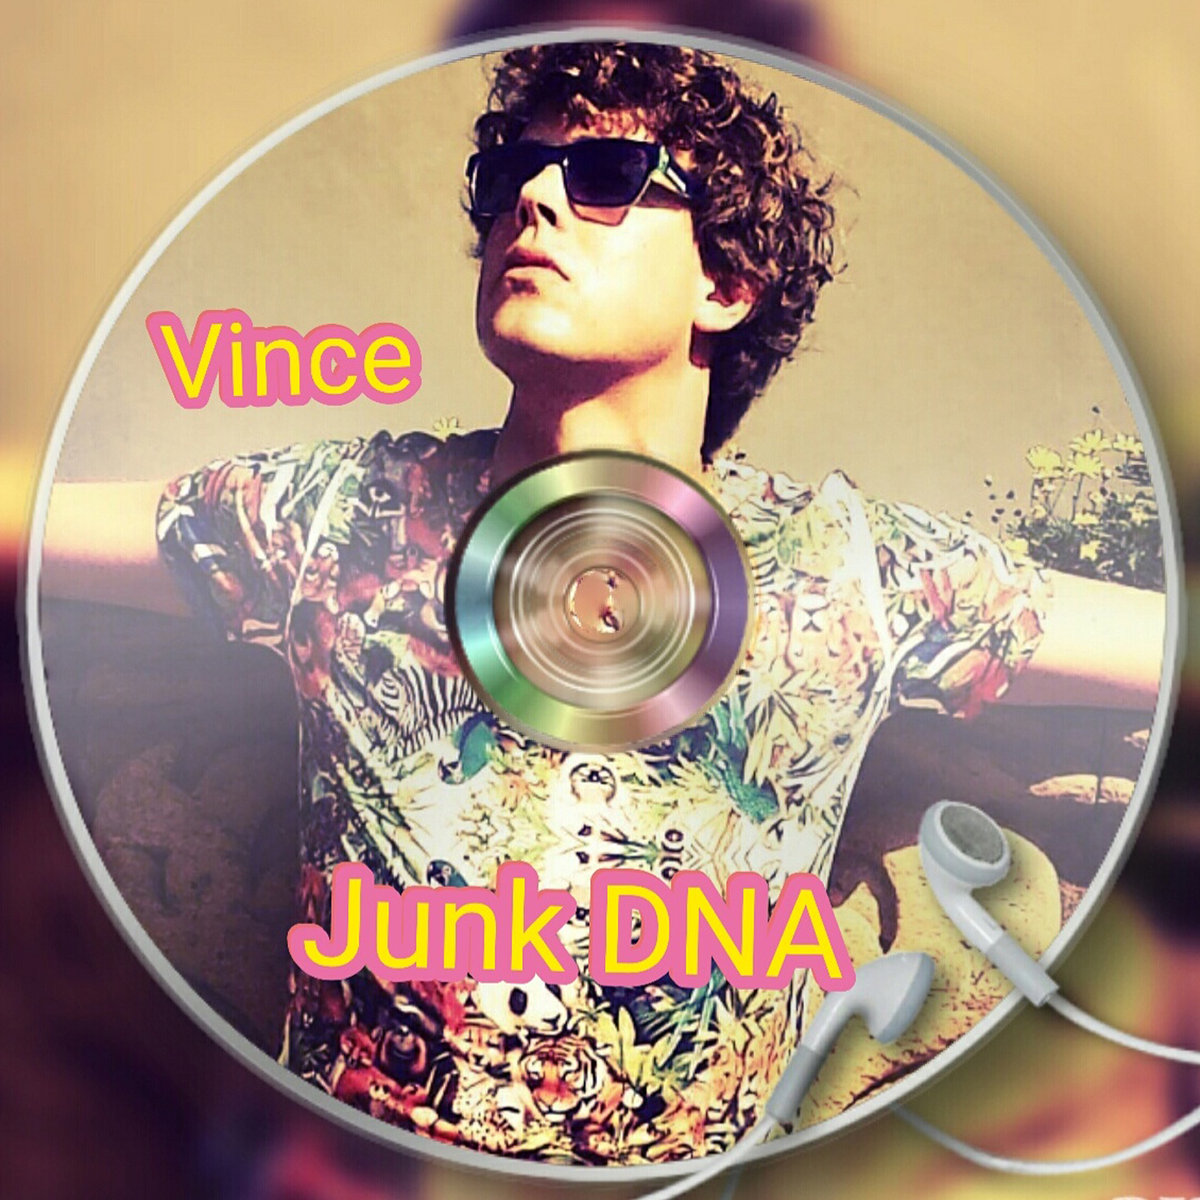 Vince - Gugu Beats @ 'Junk DNA' album (pop, pop punk)